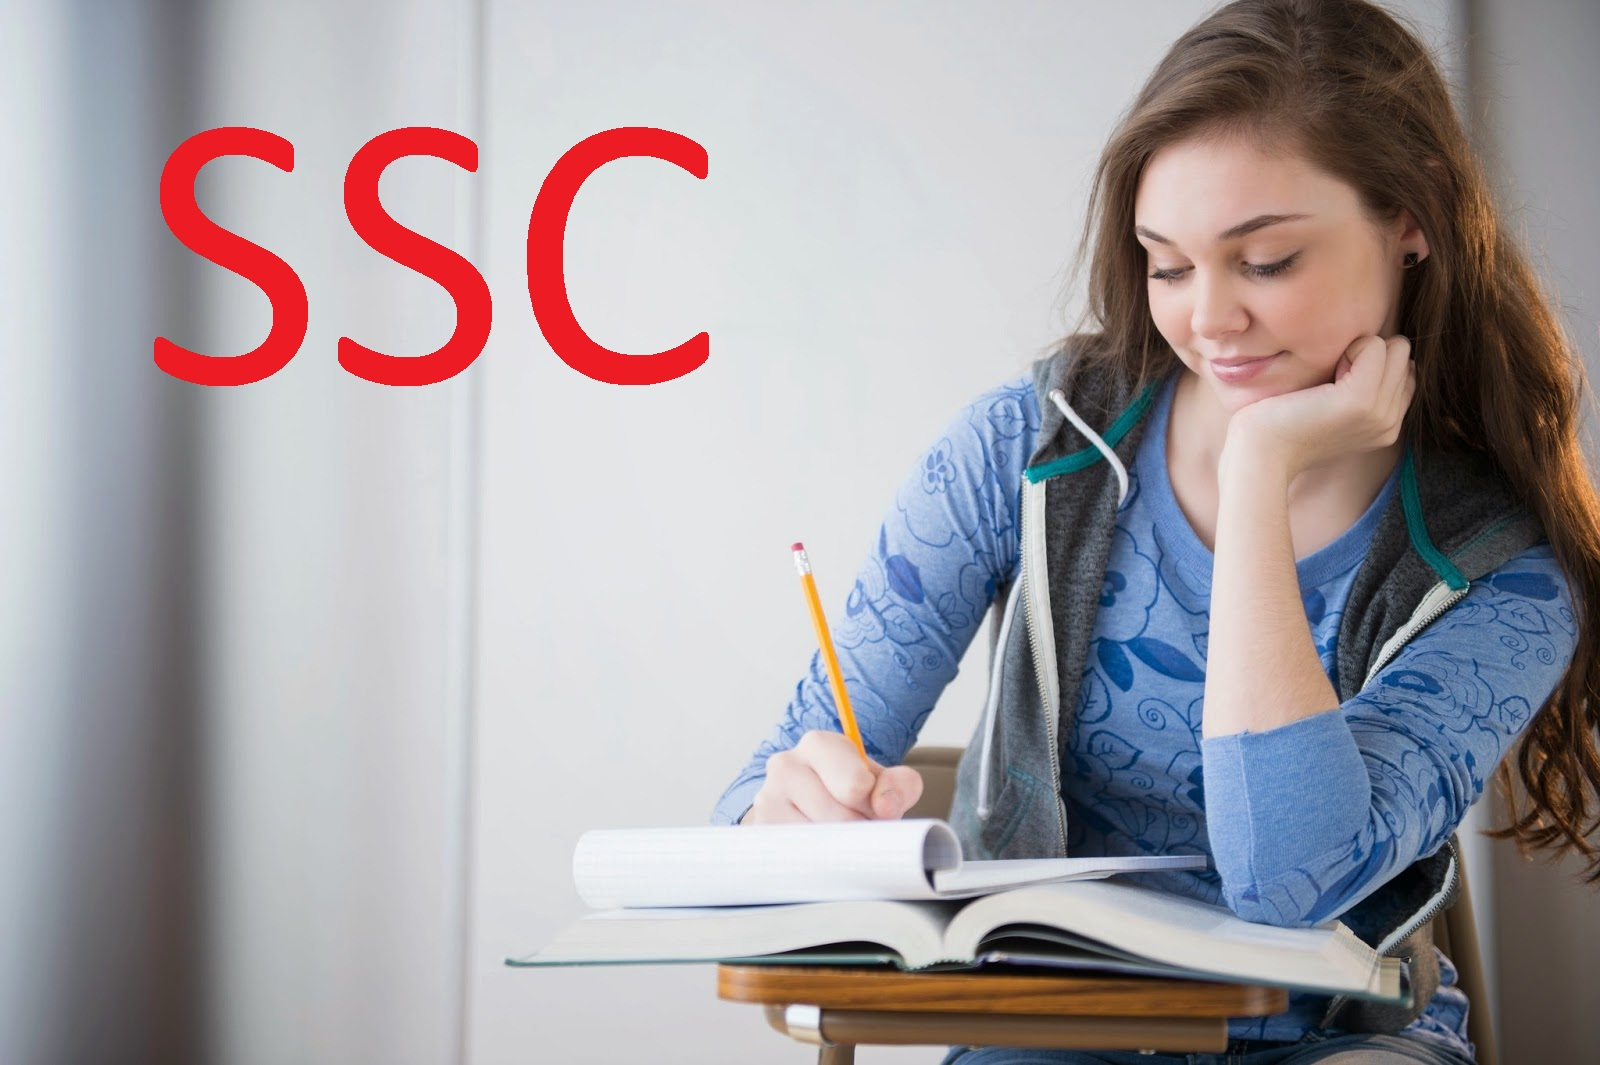 ssc cgl exam girl